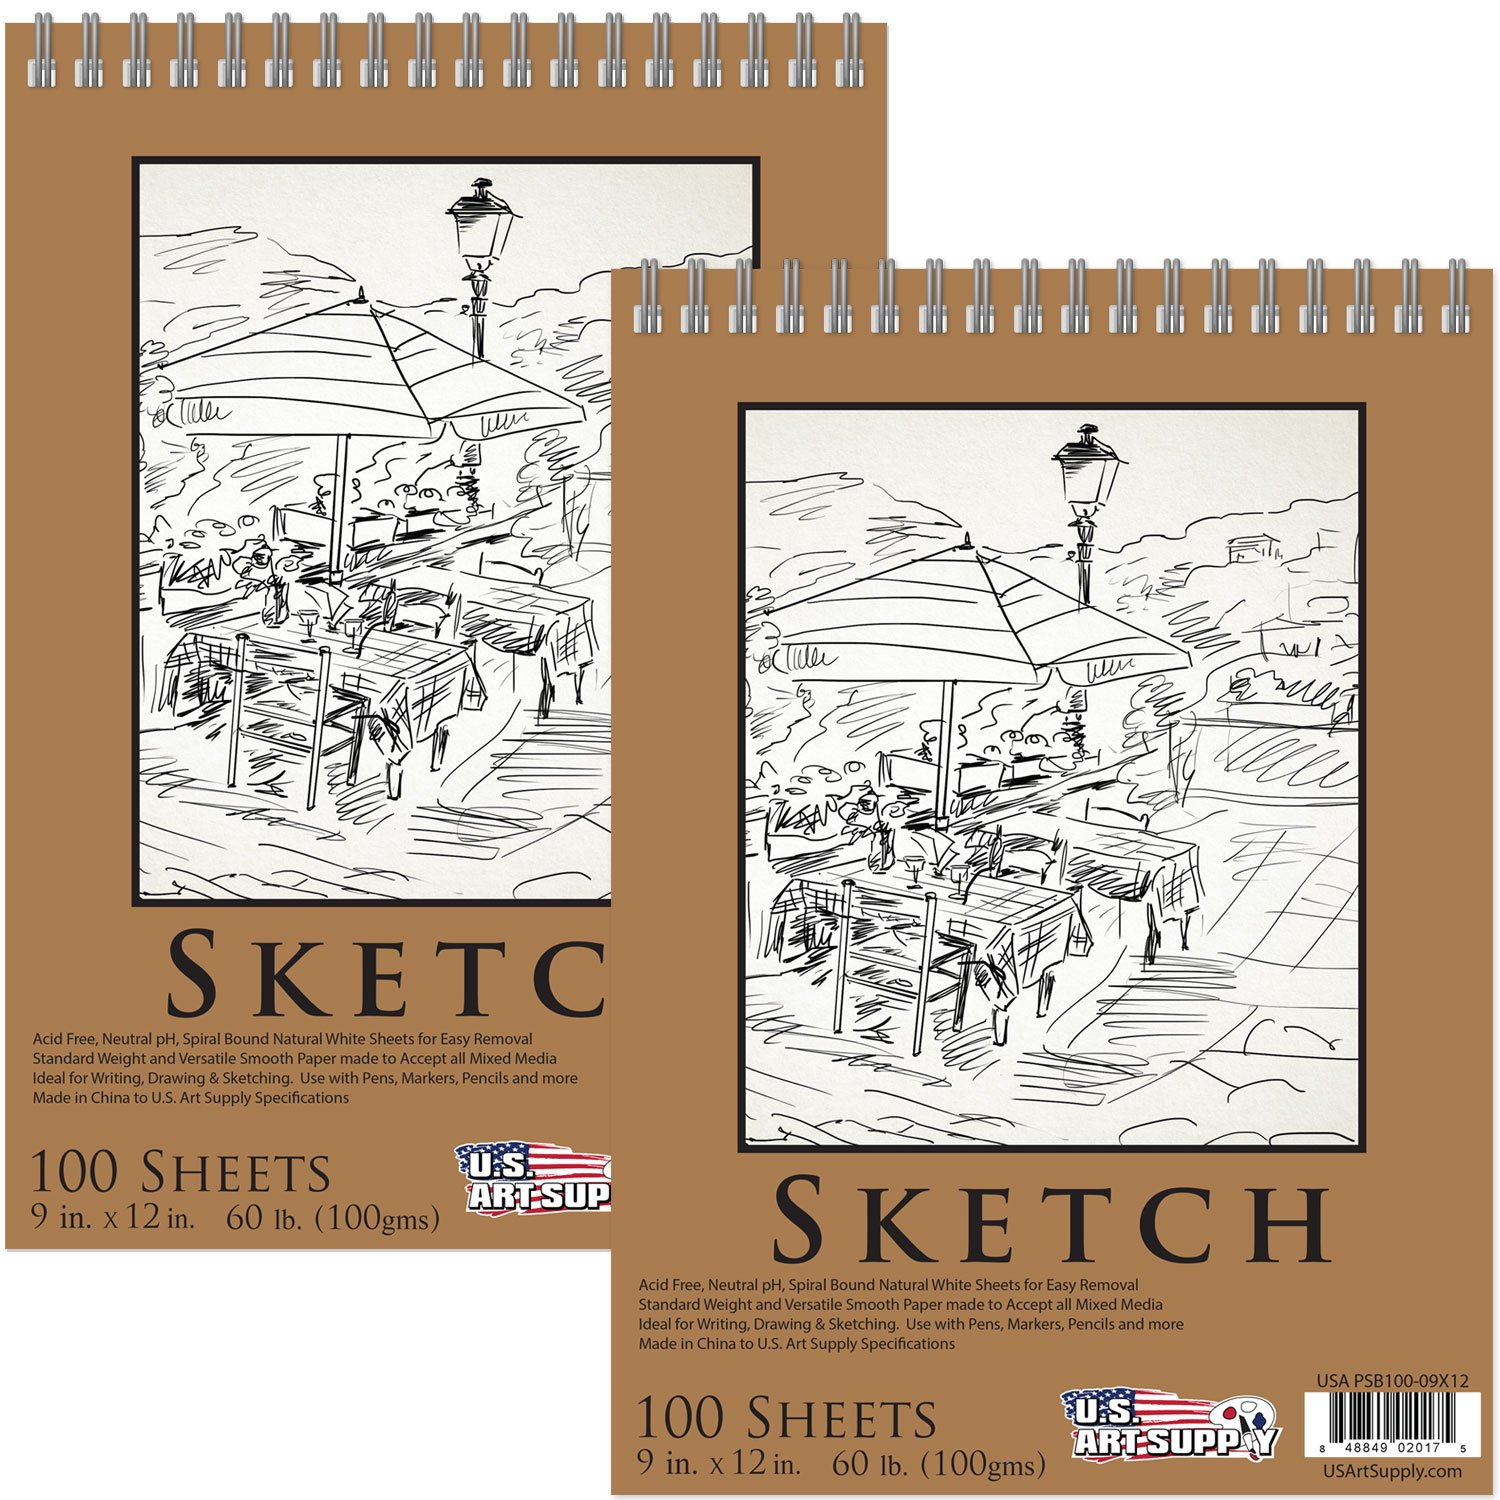 U.S. Art Supply 9'' x 12'' Premium Spiral Bound Sketch Pad, Pad of 100-Sheets, 60 Pound (100gsm) (Pack of 2 Pads) by US Art Supply